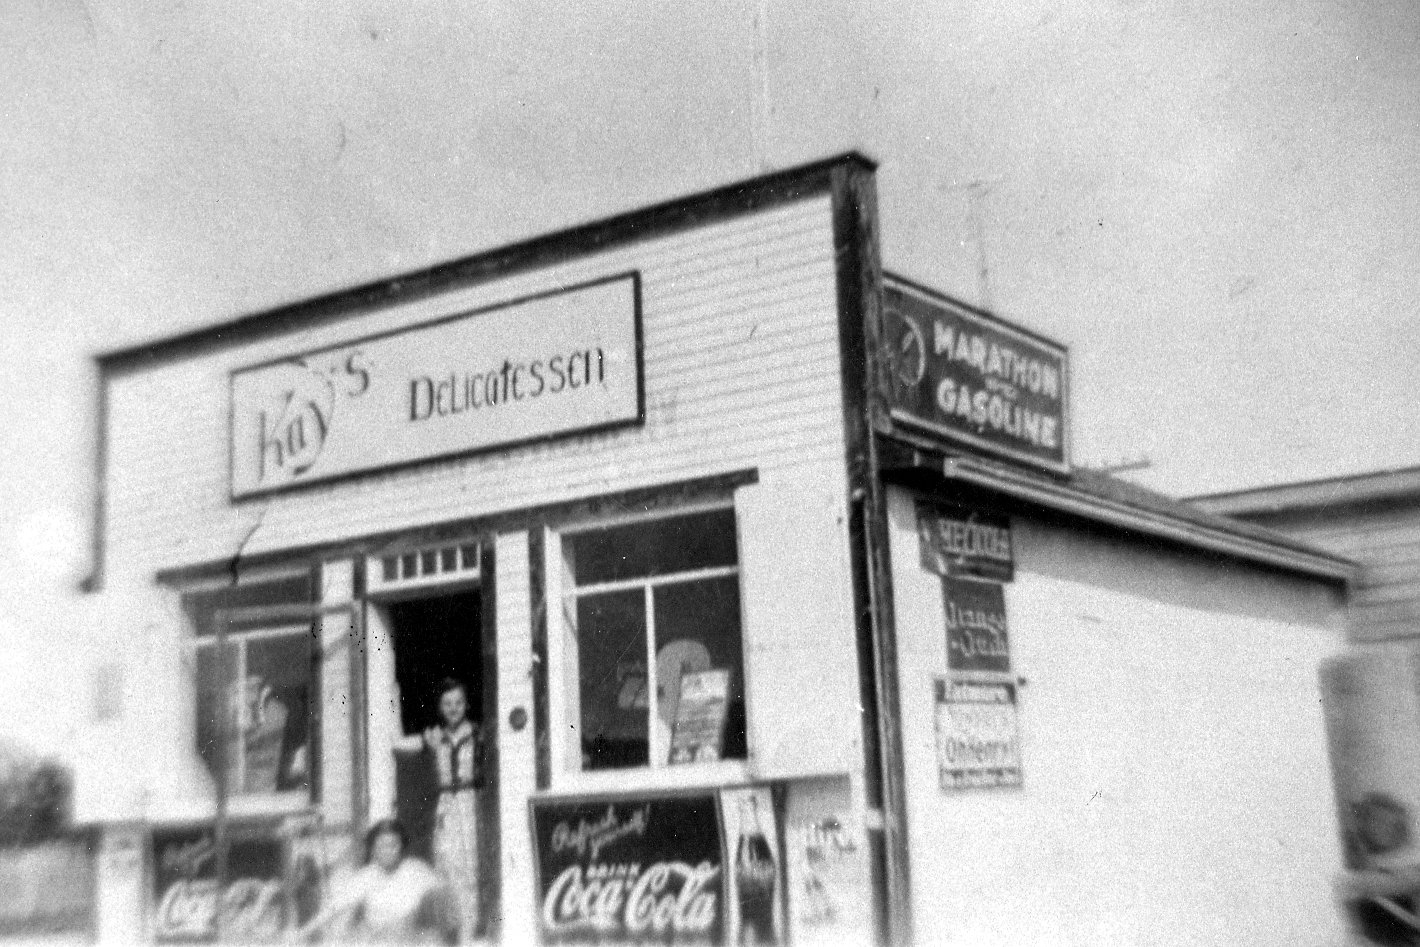 Kay's Delicatessen in East Selkirk -Mike & Kay Negrich (nee Karank). Now where St Mary's Catholic church now stands